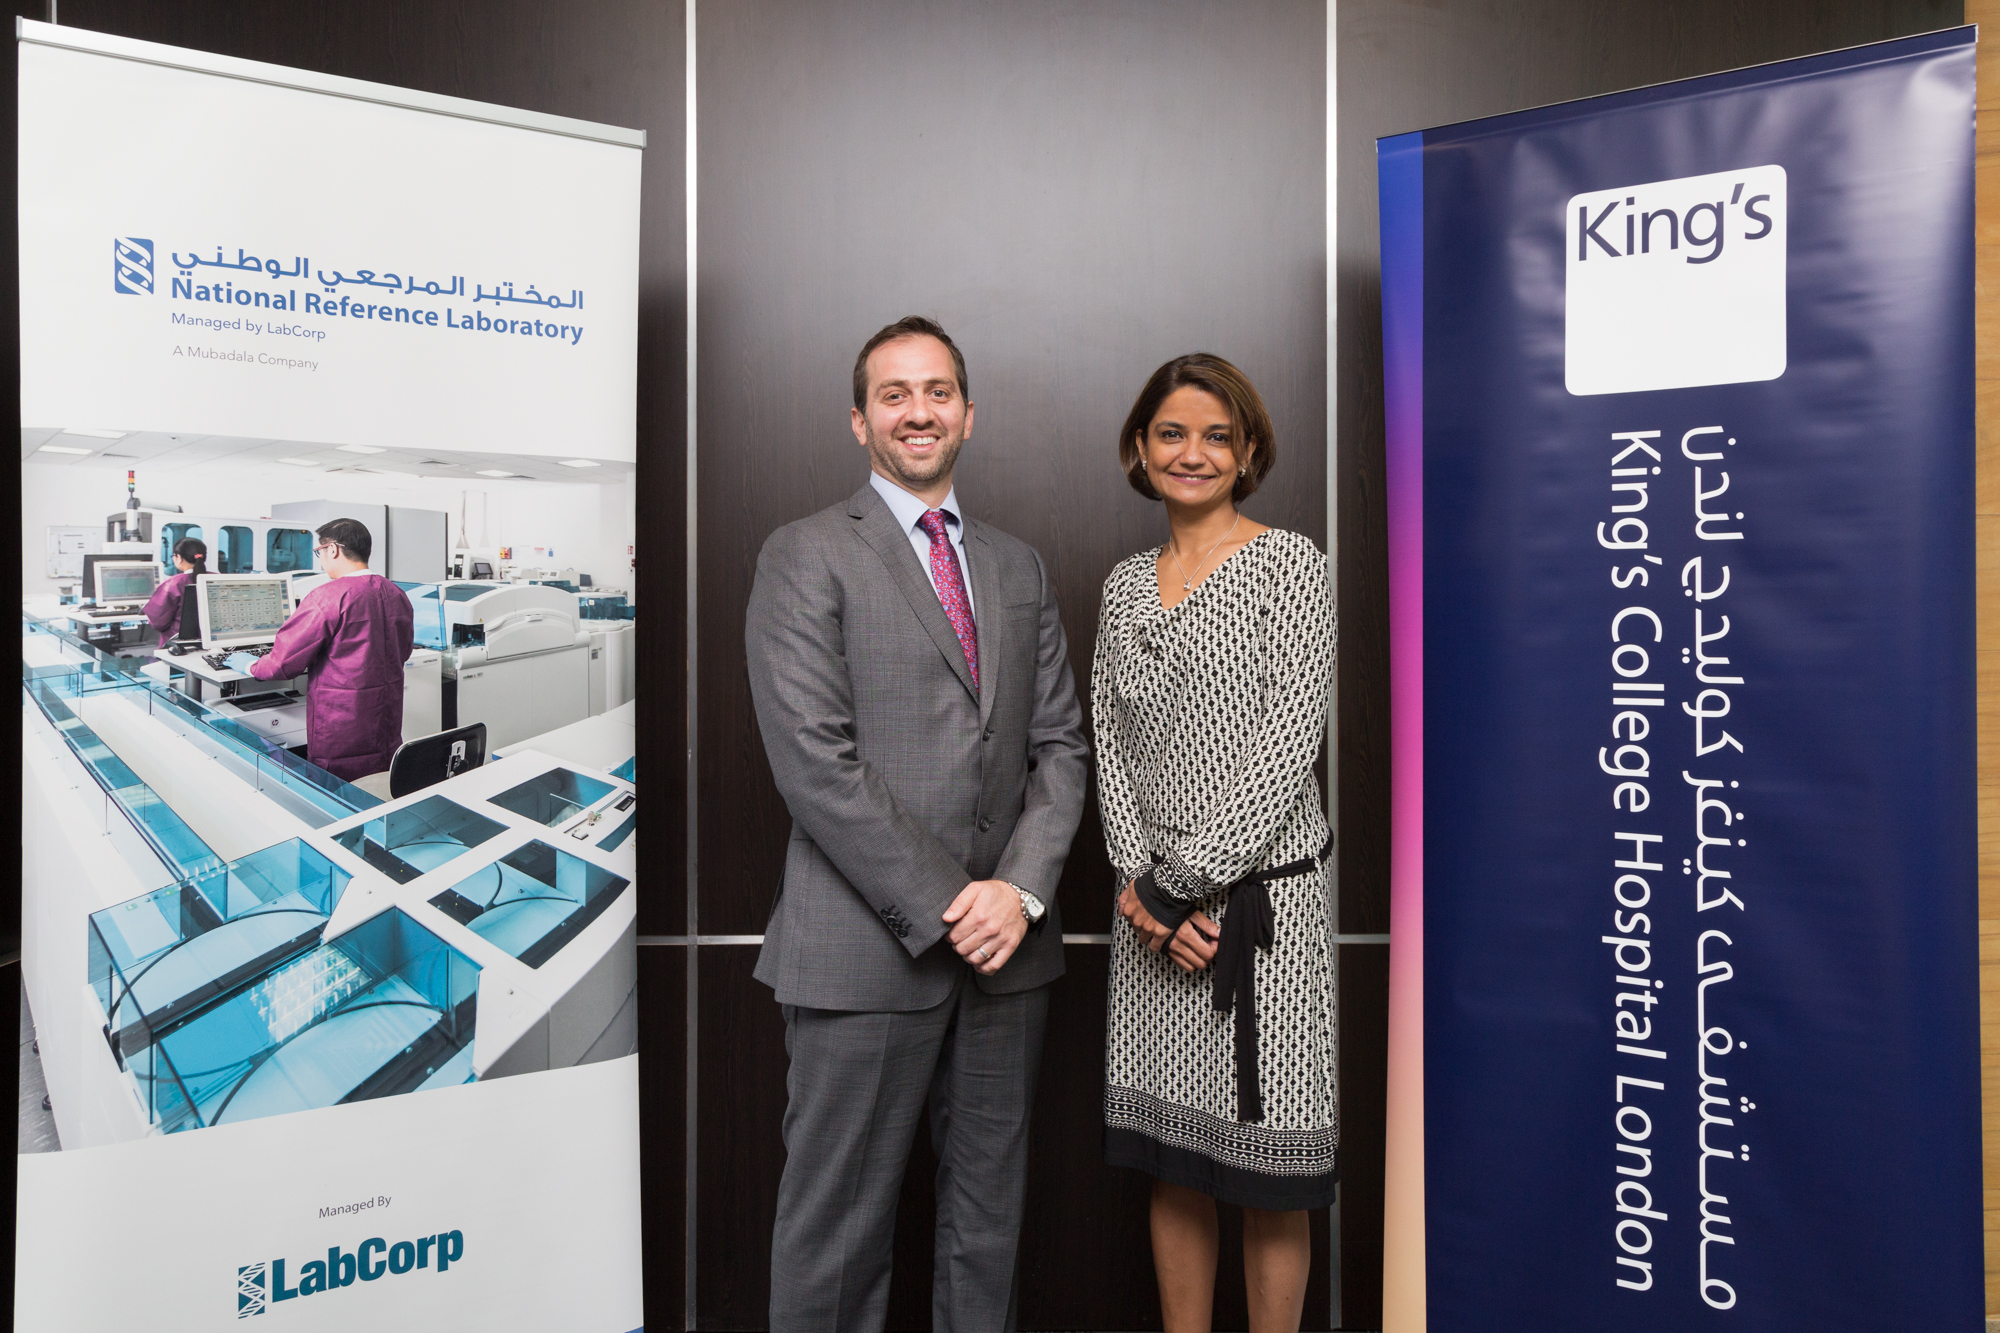 NRL and King's College Hospital London in the UAE partnering